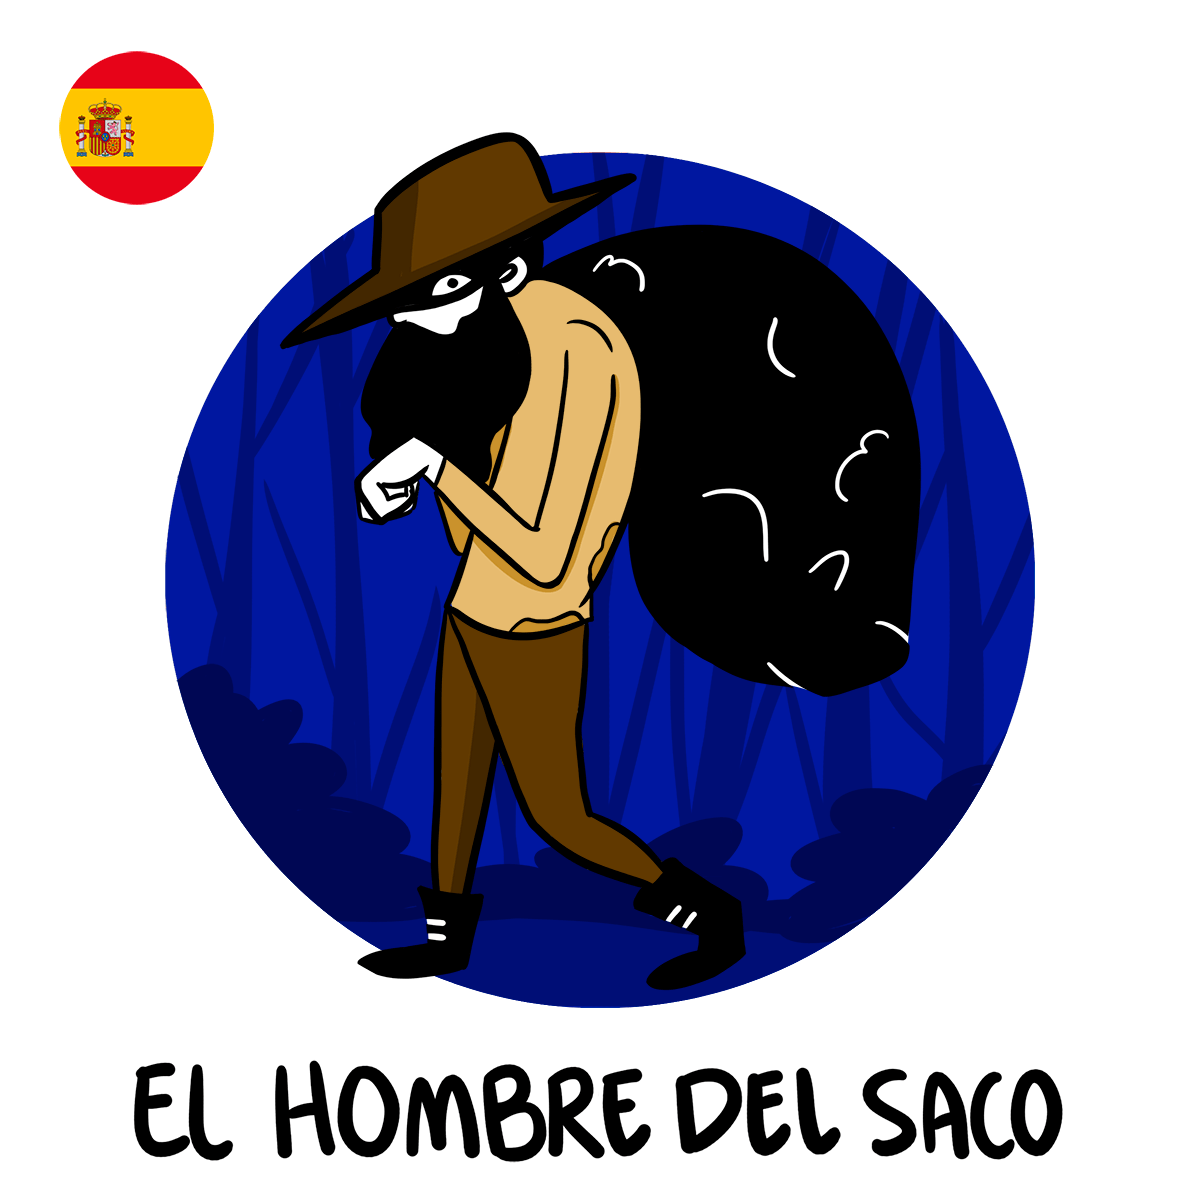 illlustration of Hombre del Saco, Spanish boogeyman